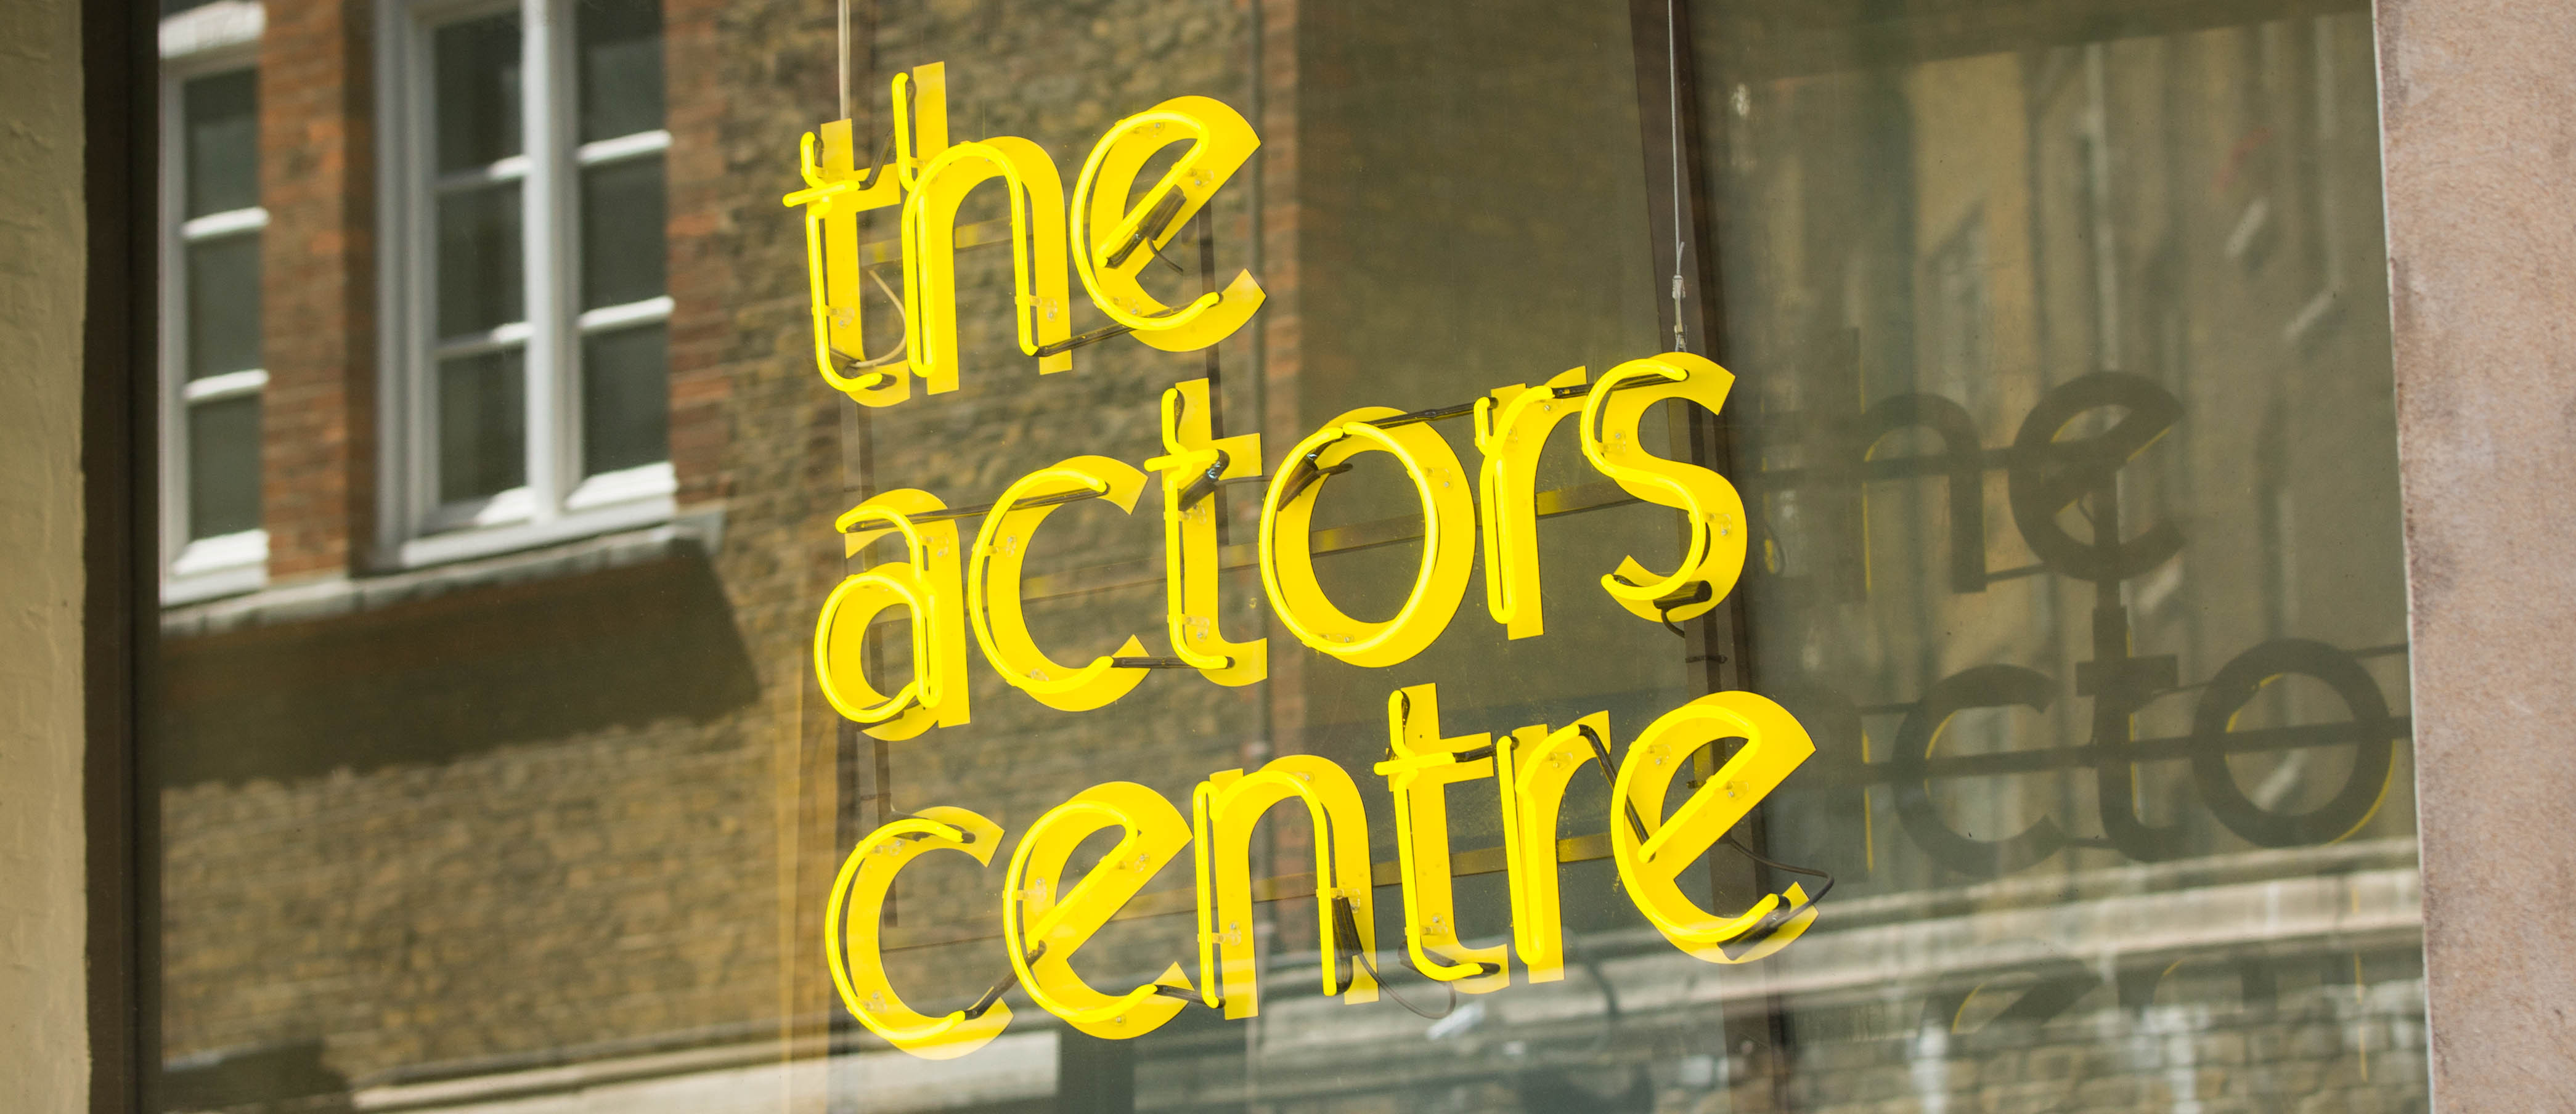 actors centre